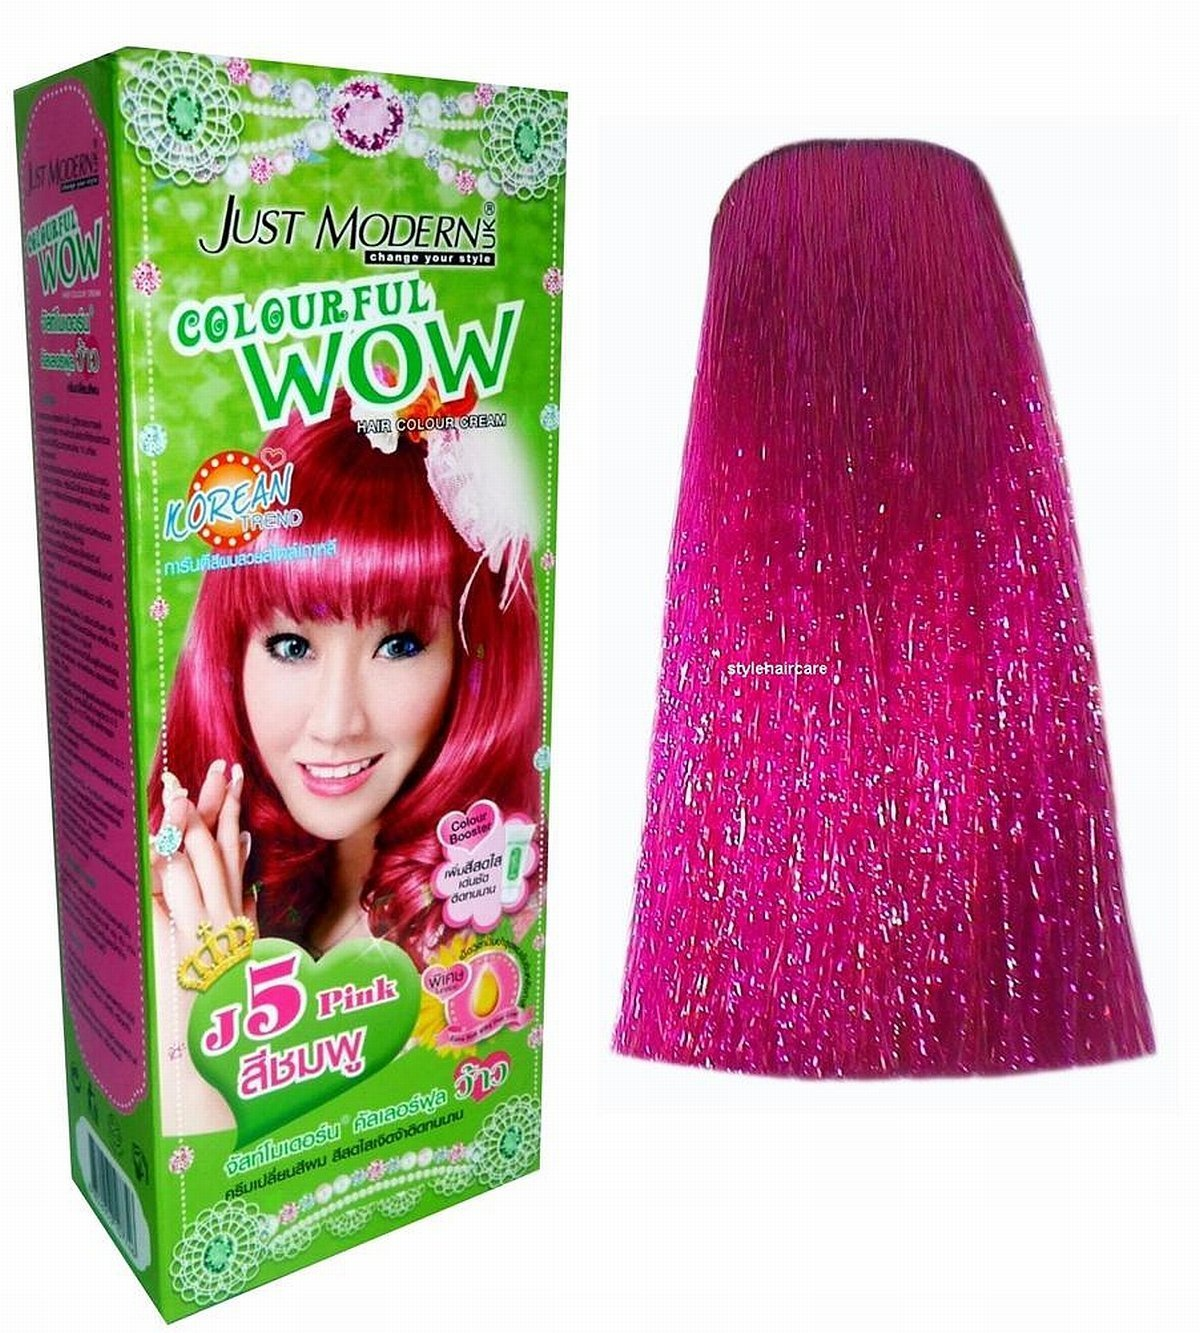 Hair Colour Permanent Cream Dye Punk Emo Goth Cosplay Pink